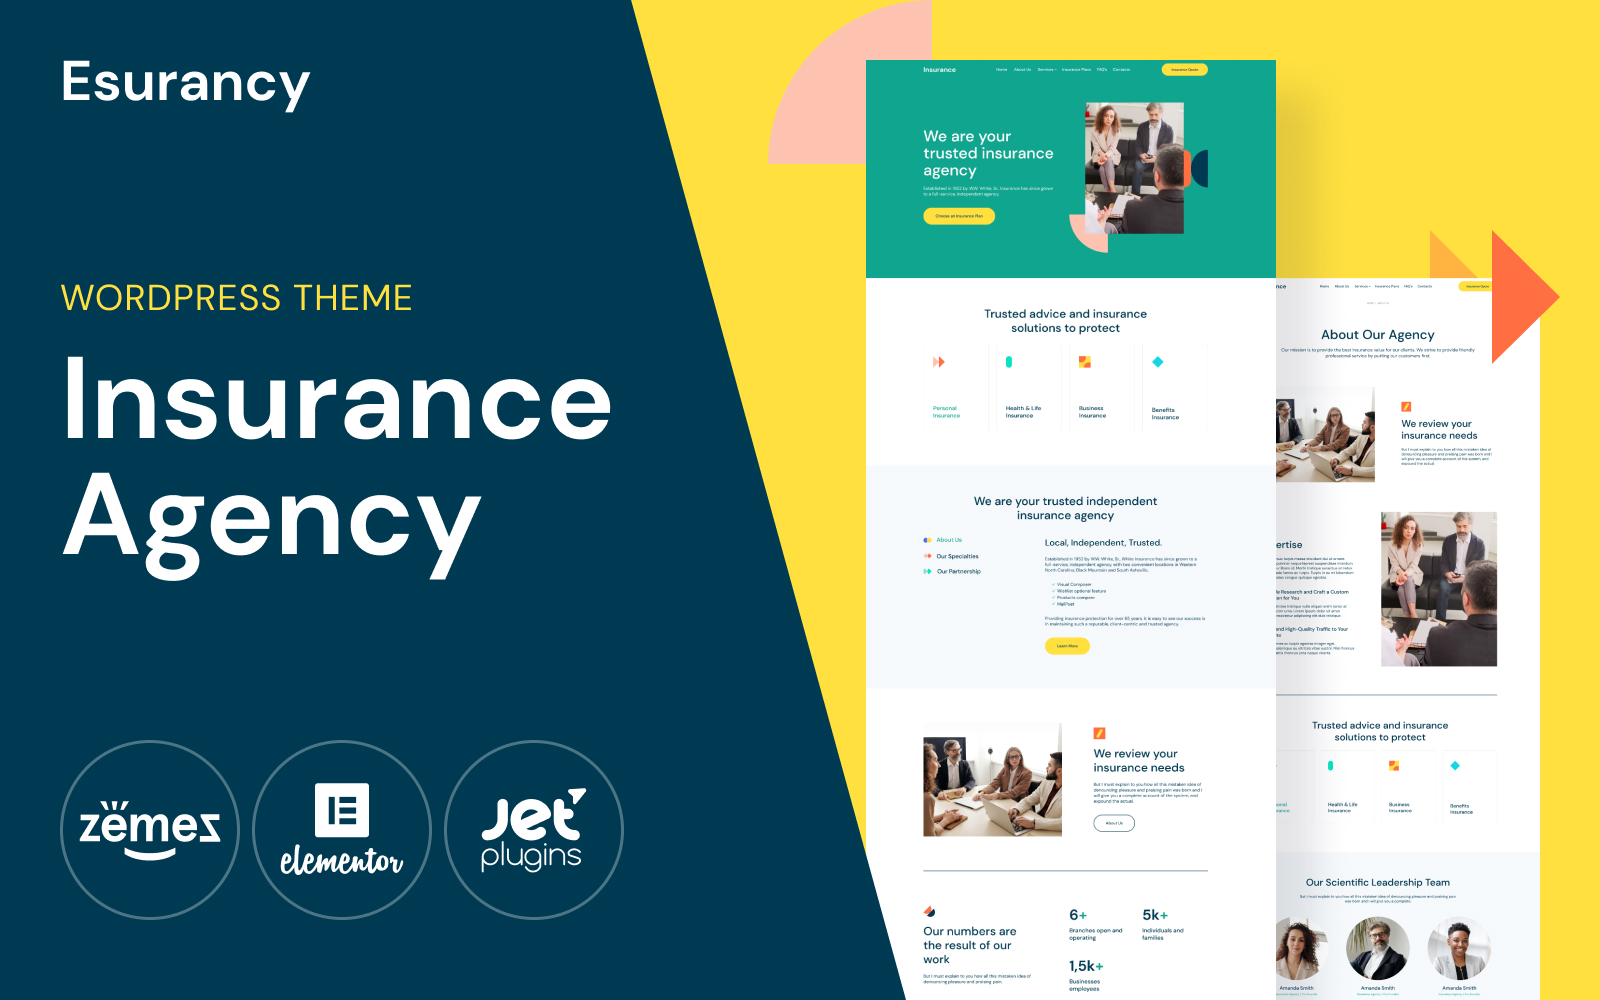 Esurancy - Insurance Agency Services WordPress Theme